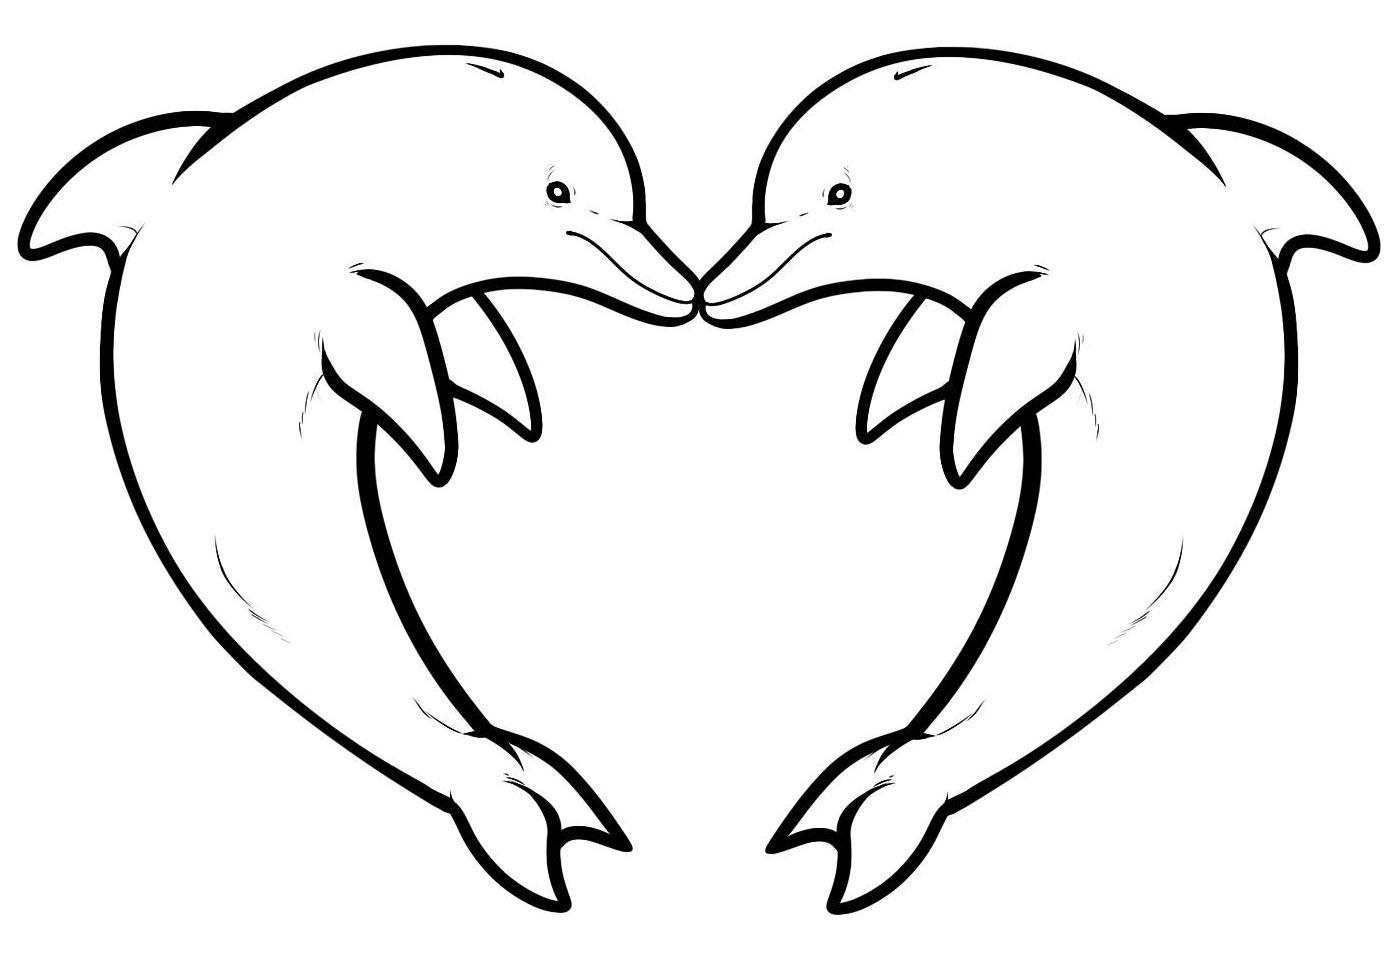 Dolphins To Download - Dolphins Kids Coloring Pages - Dolphin Coloring Sheets Free Printable